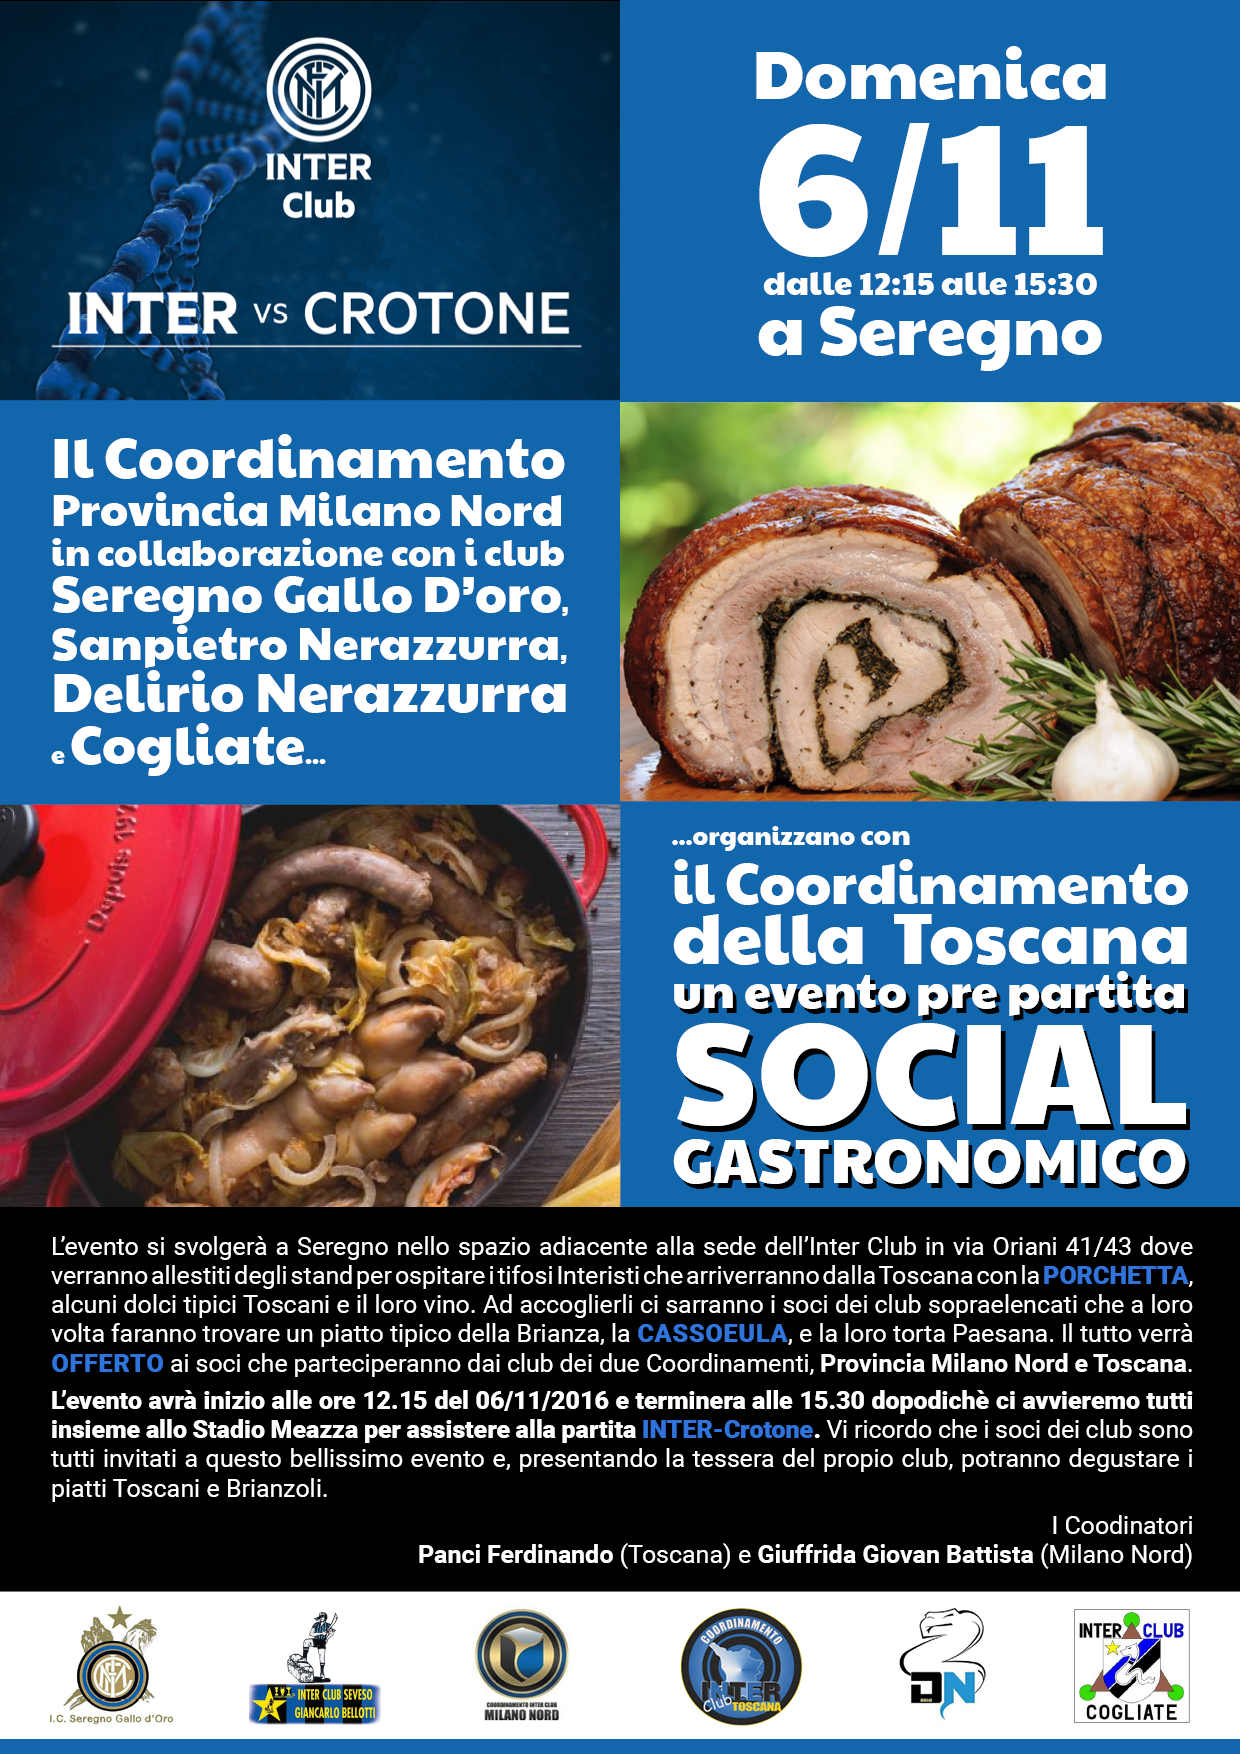 Invito all'Evento SOCIAL Gastonomico – 6/11/2016